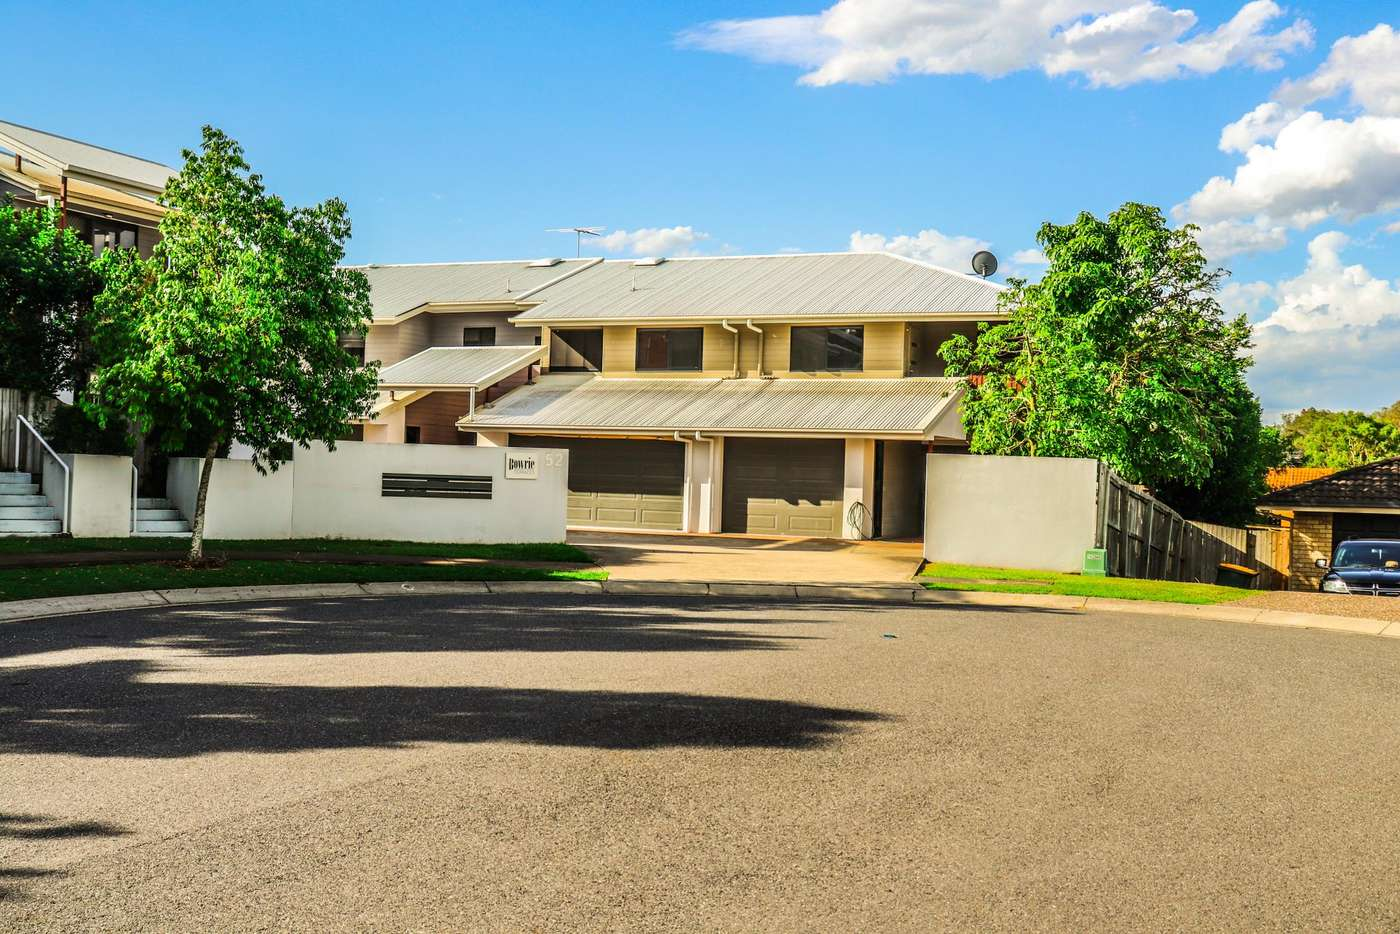 Main view of Homely house listing, 4/52 Golden Crest, Bellbowrie QLD 4070